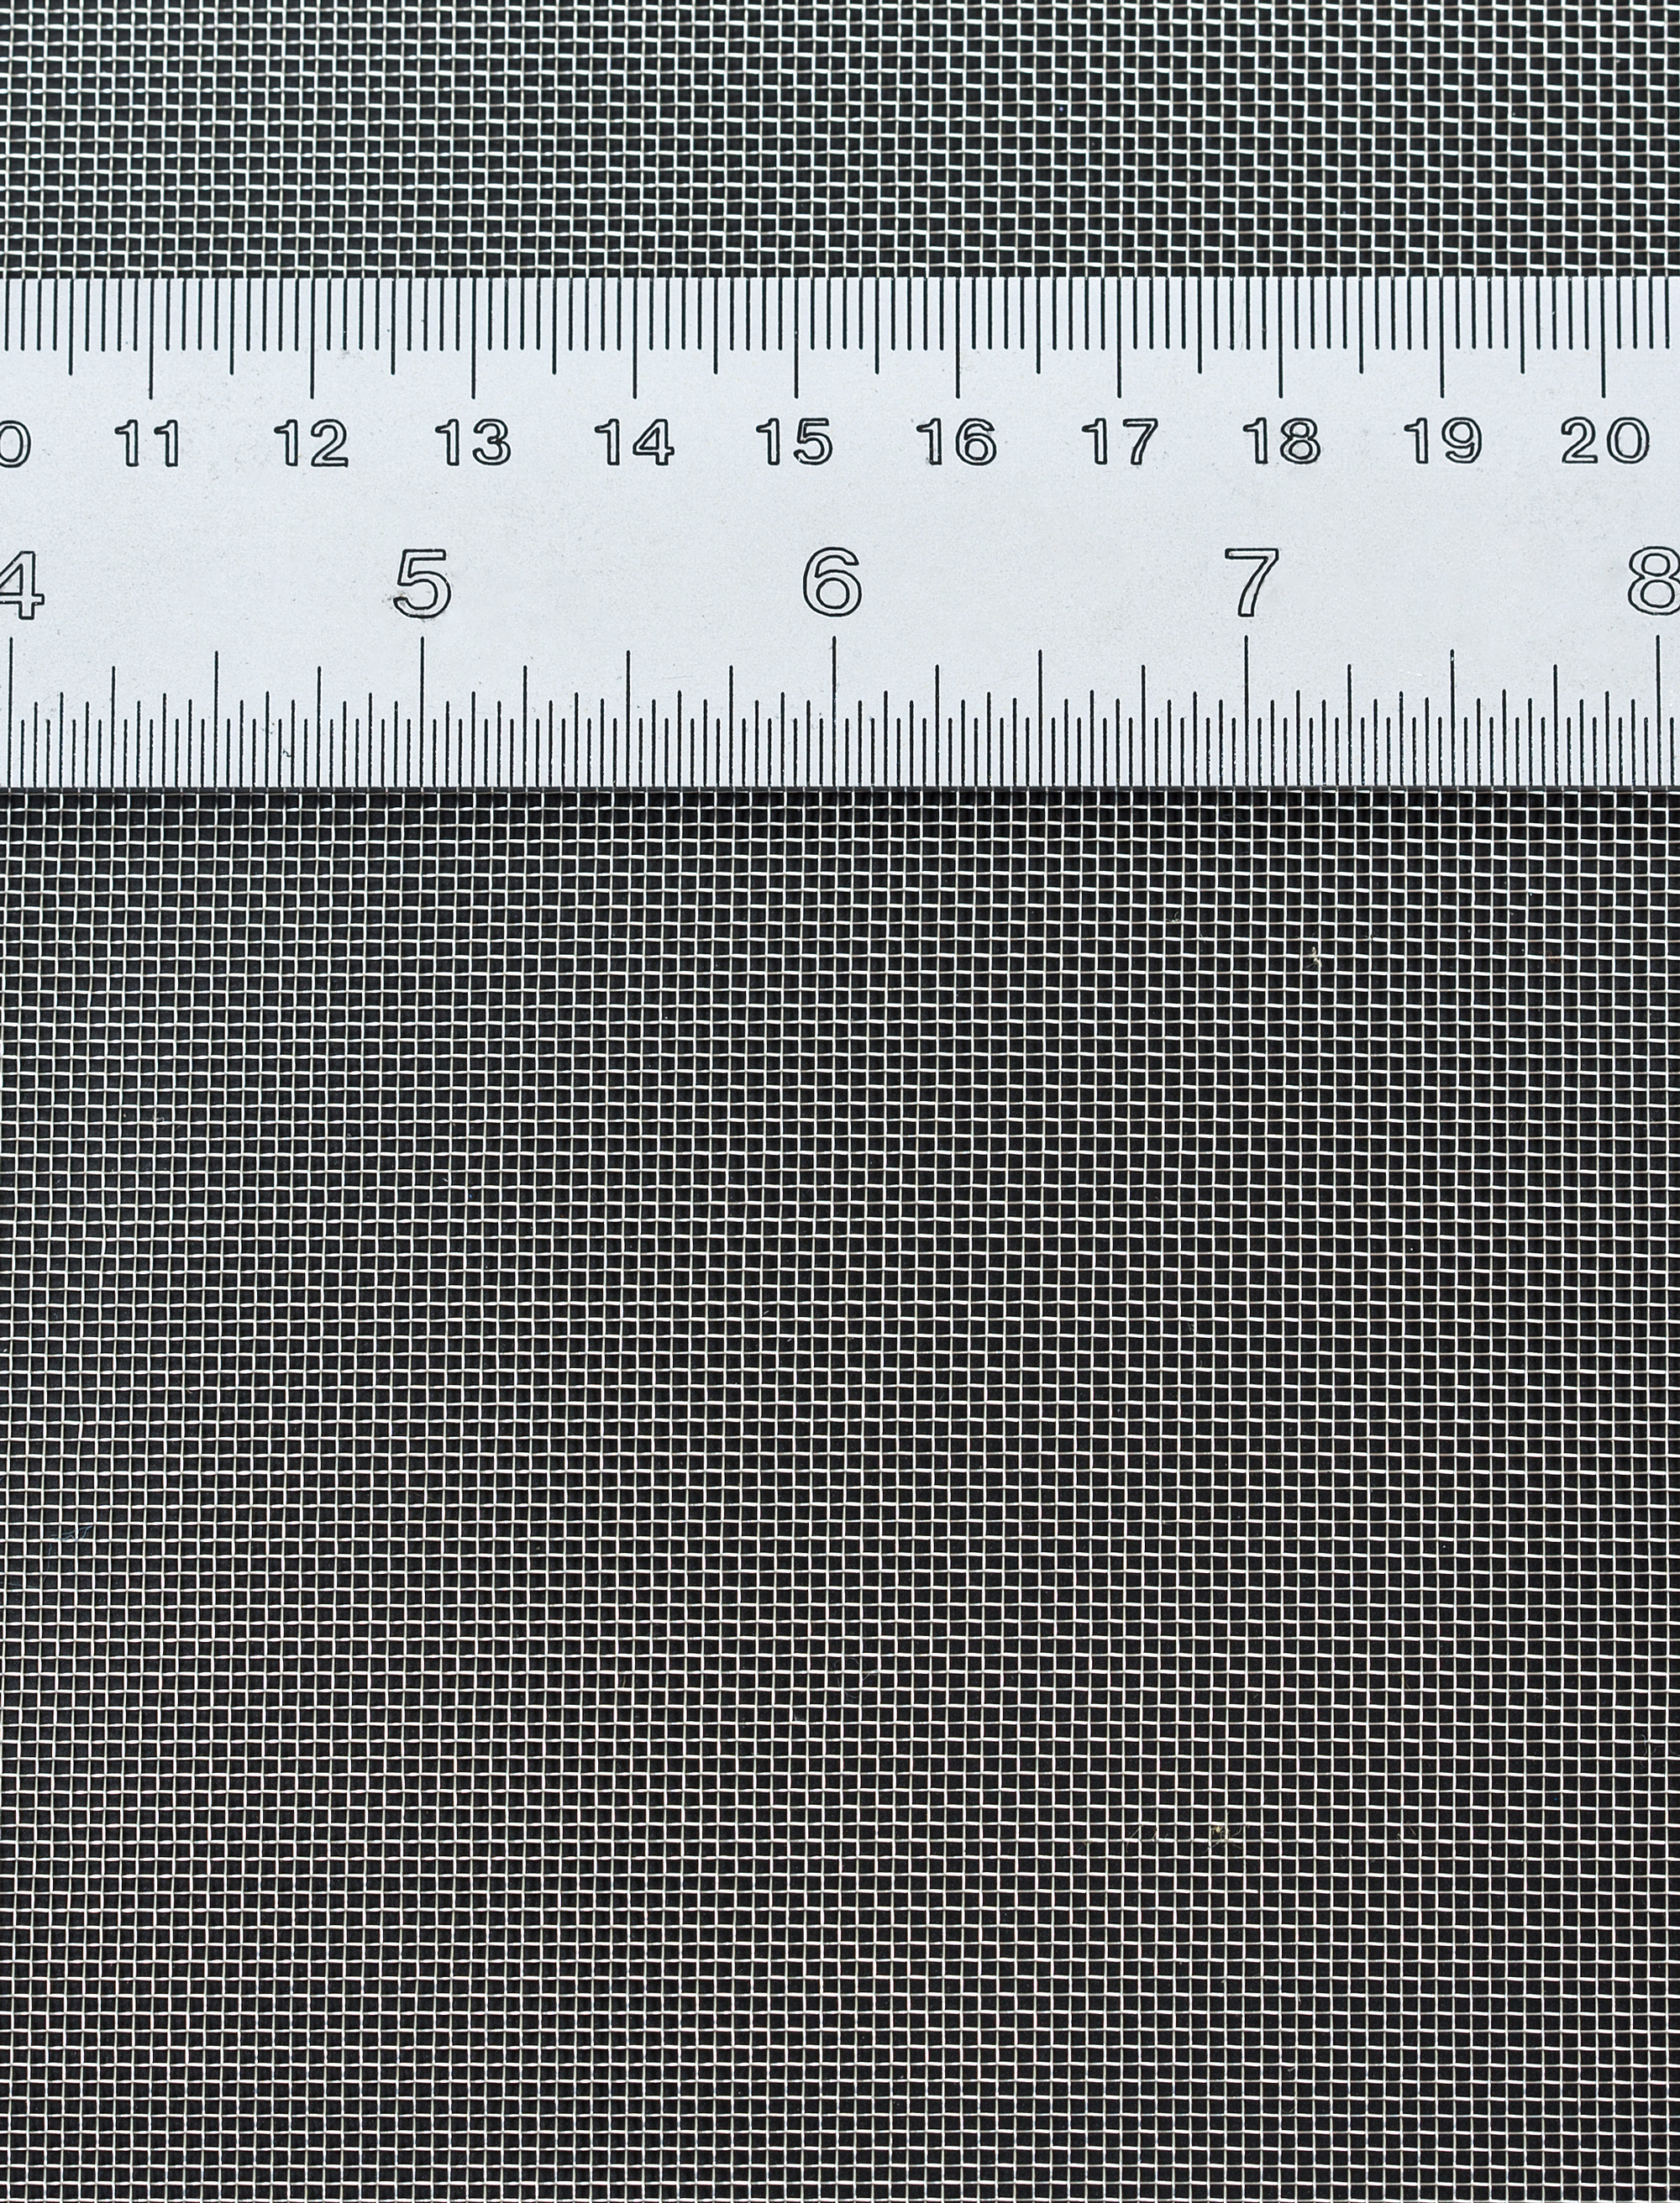 Woven Mesh Car Grilles >> Mosquito Netting Insect Screens 24#Ss304 1 1.2